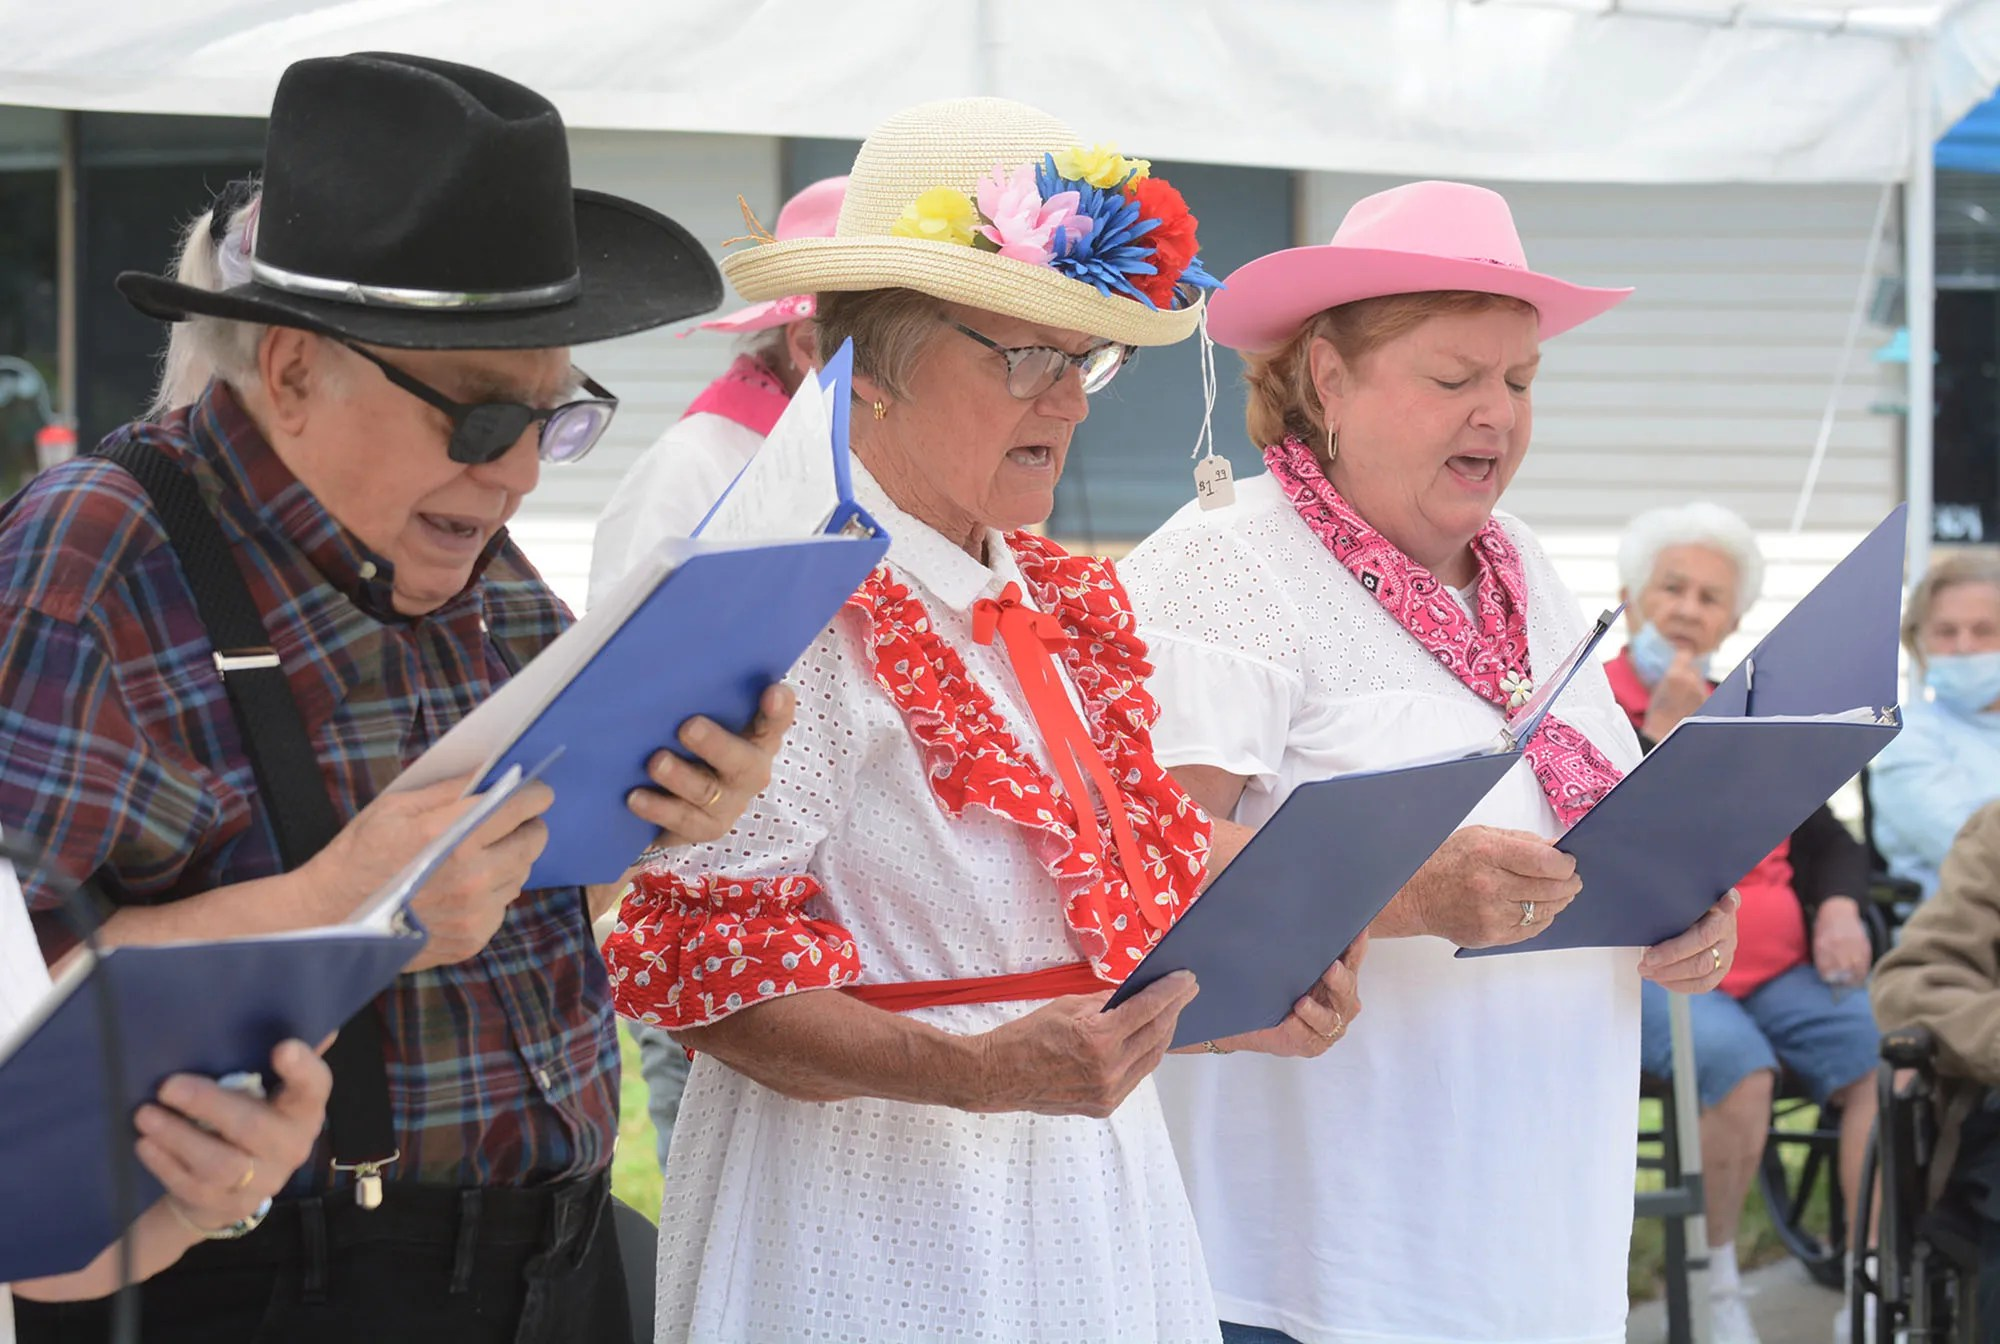 Edgar Saigneault, 88, left, Ginny Smelsee, 77, aka Minnie Pearl and Dolores Arpin, 67,  members of the Sprague Senior Smilers sing country music Thursday to residents of Colonial Health & Rehab in Plainfield. At far right are residents Rejeanne Desaulniers and Jeanne Bourque, both 90. [John Shishmanian/ NorwichBulletin.com]